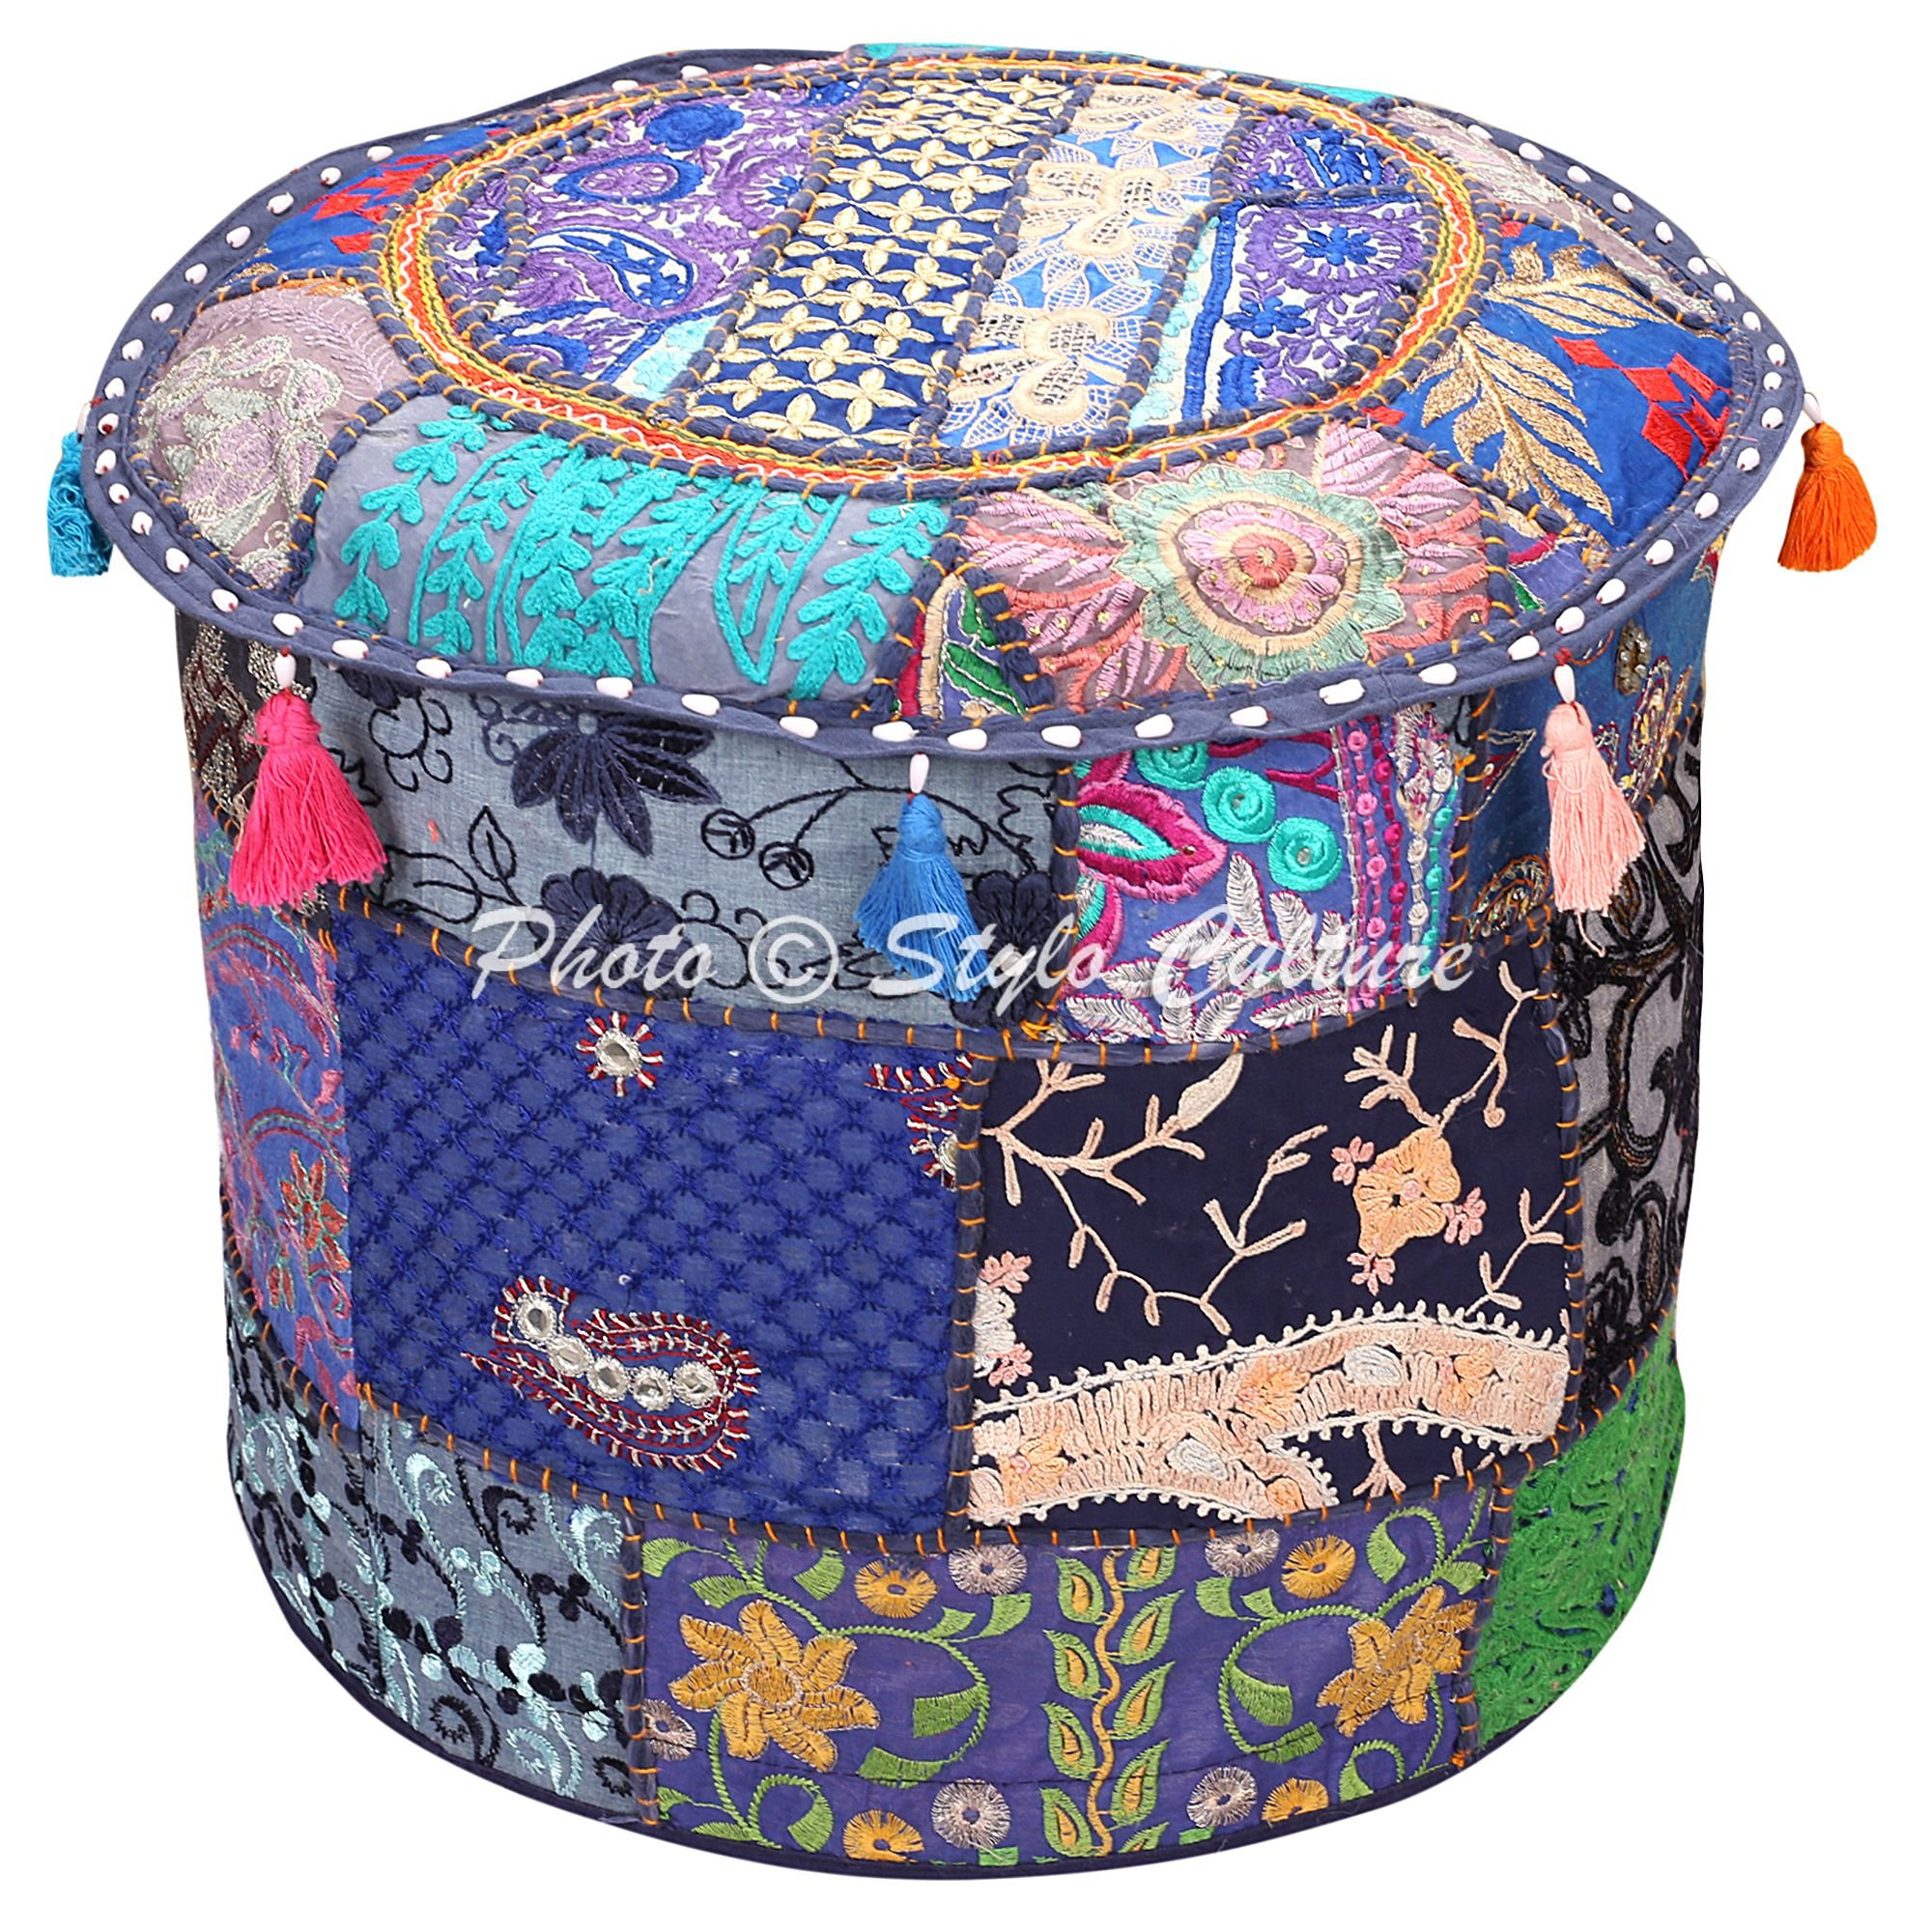 Stylo Culture Decorative Pouffe Floor Pillow Cover Round Patchwork Embroidered Pouf Ottoman Cover Blue Cotton Floral Traditional Furniture Footstool Seat Foot Rest Puff Cover (18x18x13)